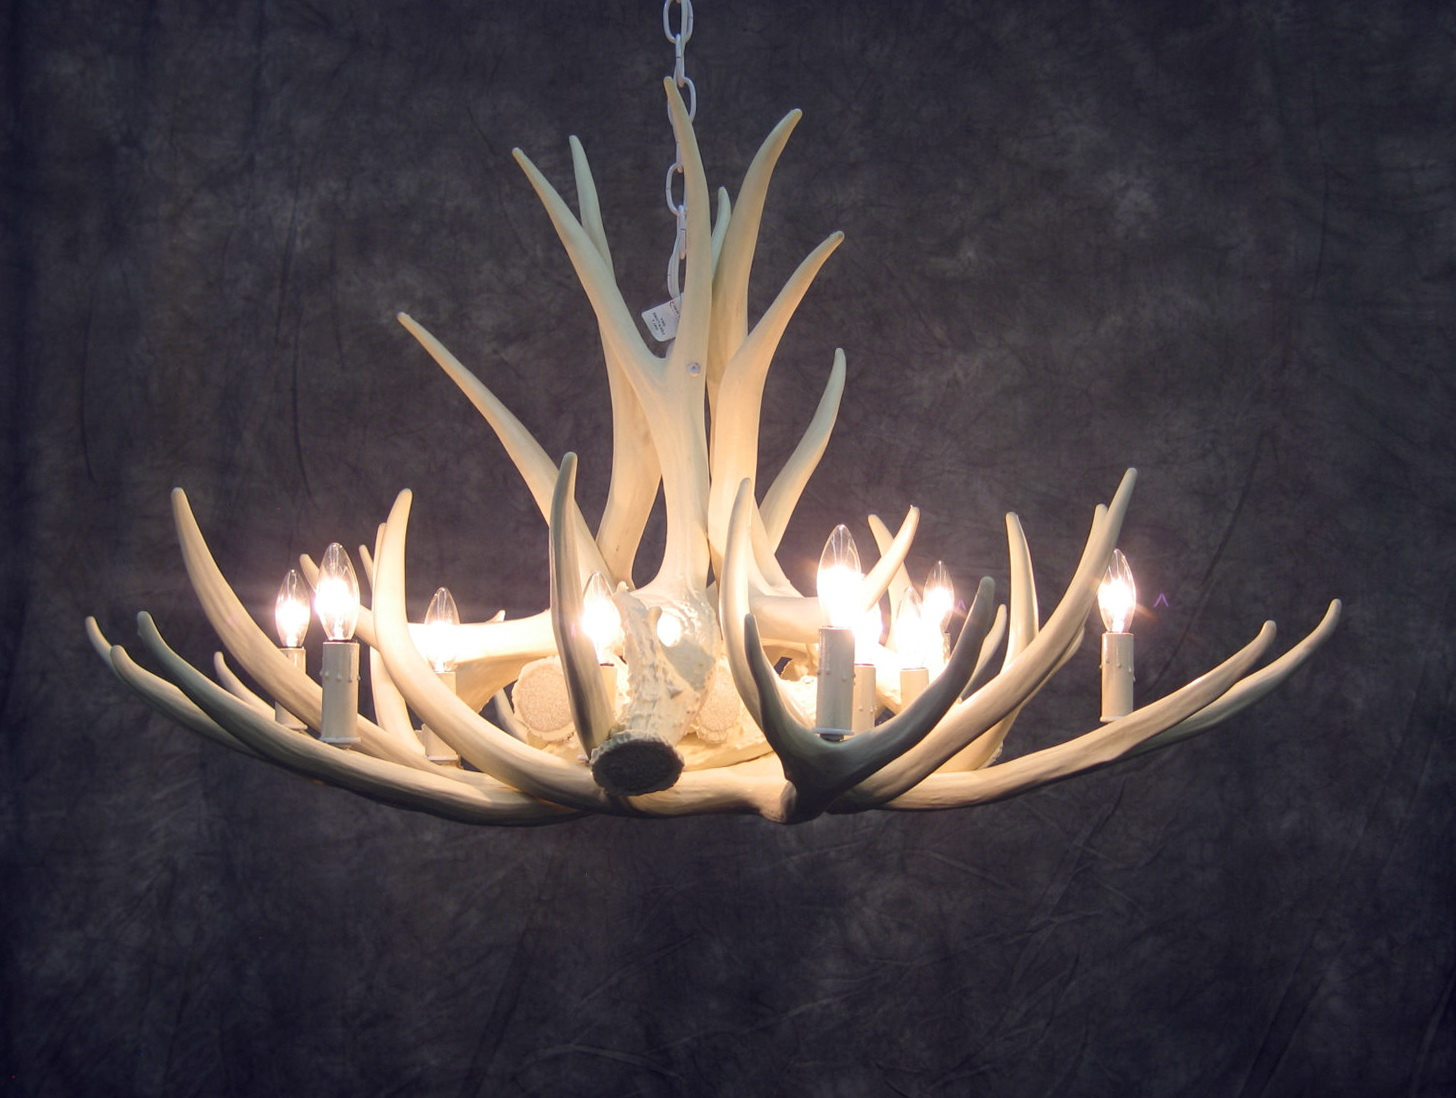 Chiropractic Cushions Images AHOY TRADER Hand Painted  : deer antler chandelier for sale from favefaves.com size 1456 x 1098 jpeg 360kB